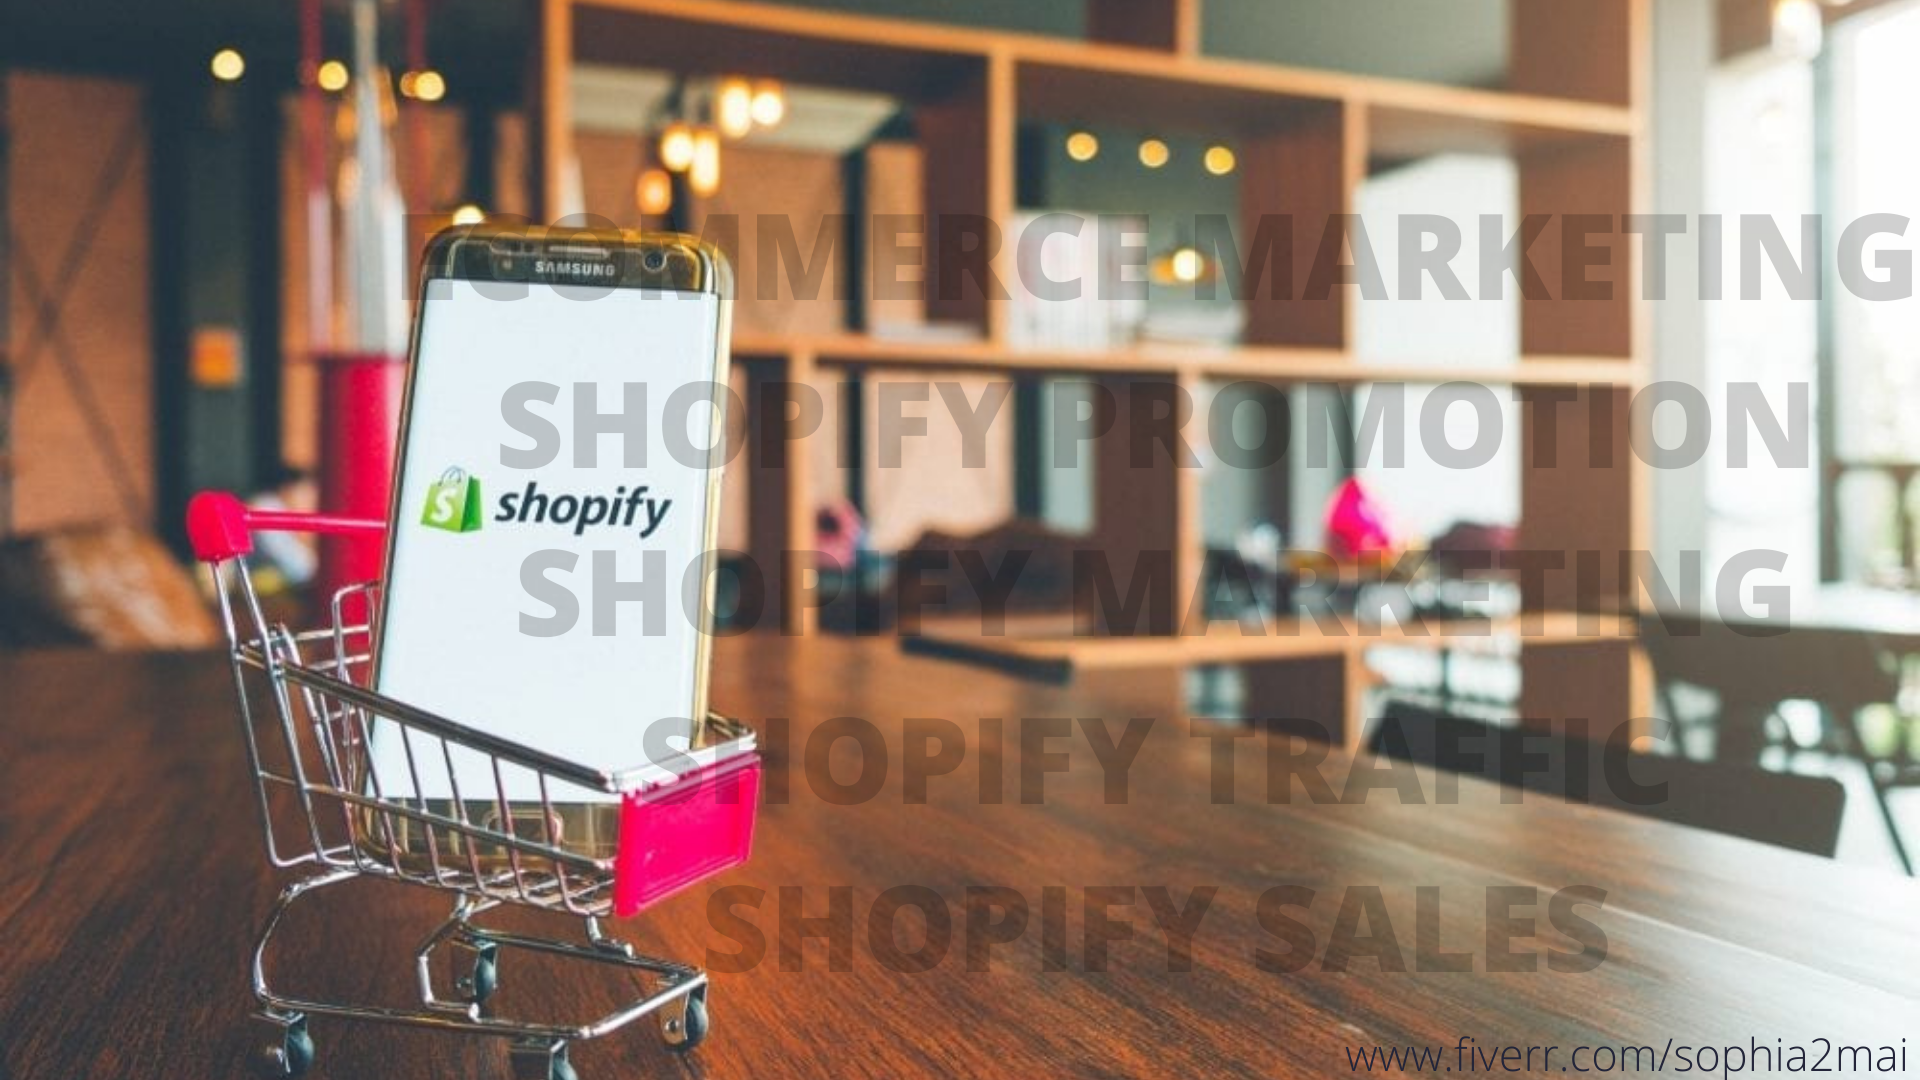 I will do roi guarantee sales shopify marketing,shopify promotion,shopify traffic sales, FiverrBox